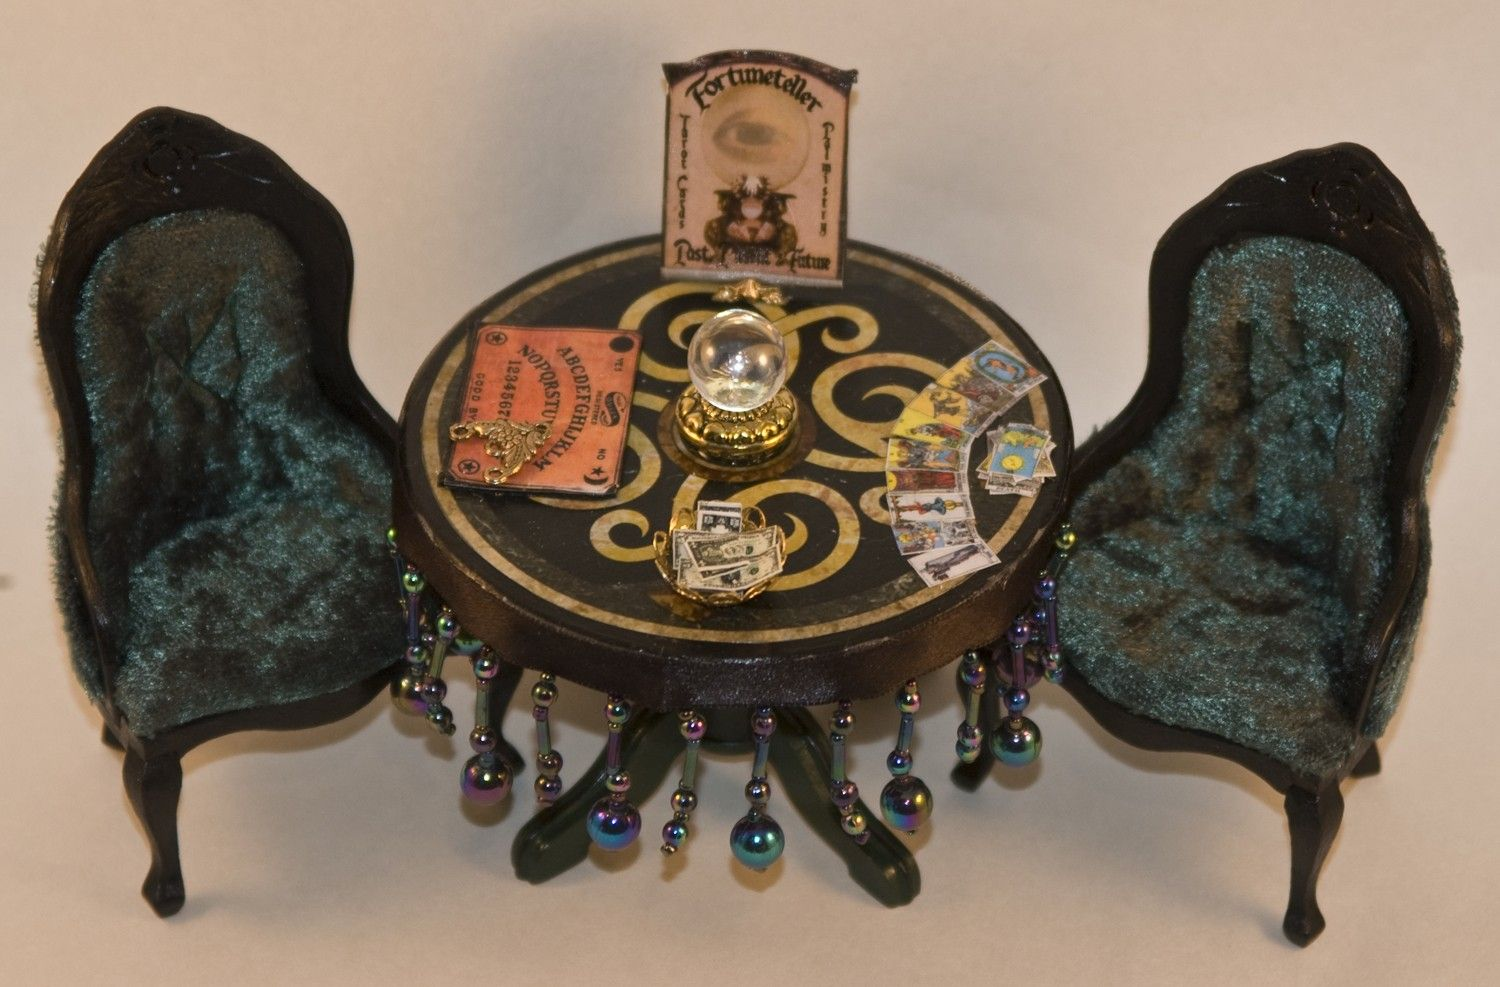 Haunted witch / gypsy / fortune teller's table.